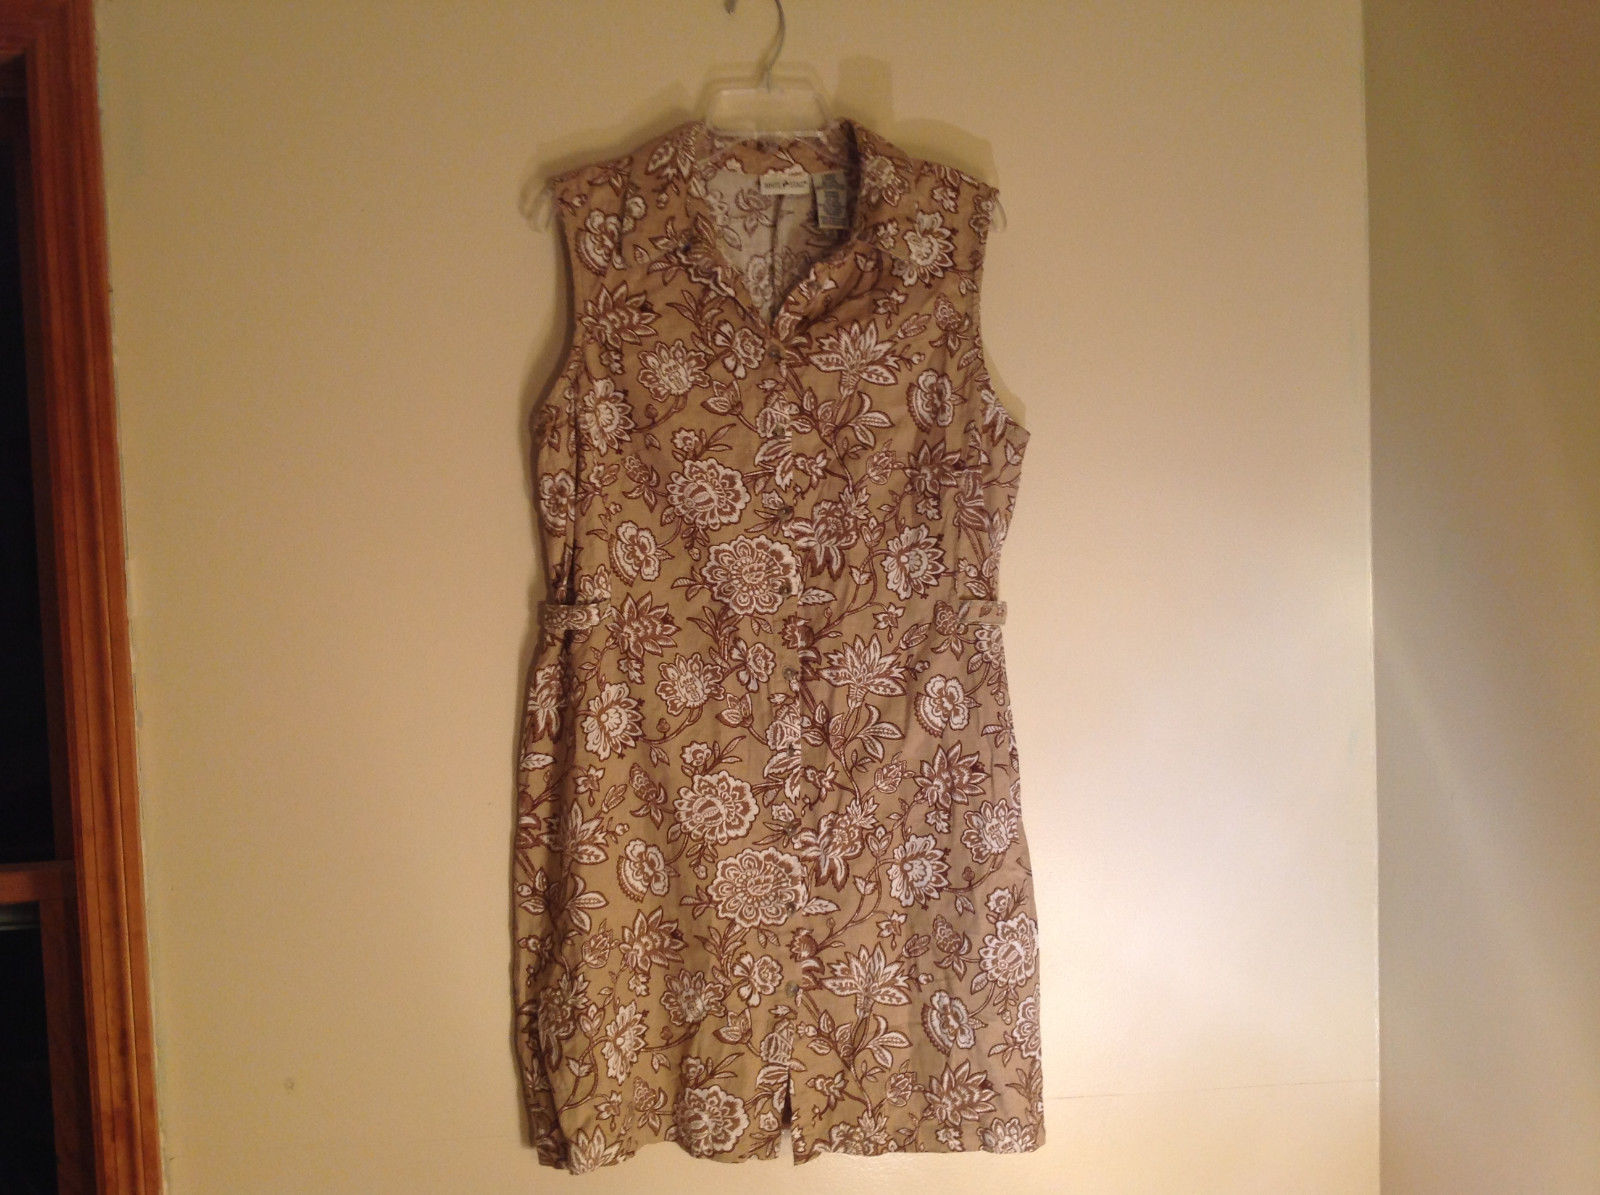 Tan Paisley Flower Design Sleeveless Dress White Stag Made in Bangladesh Size L